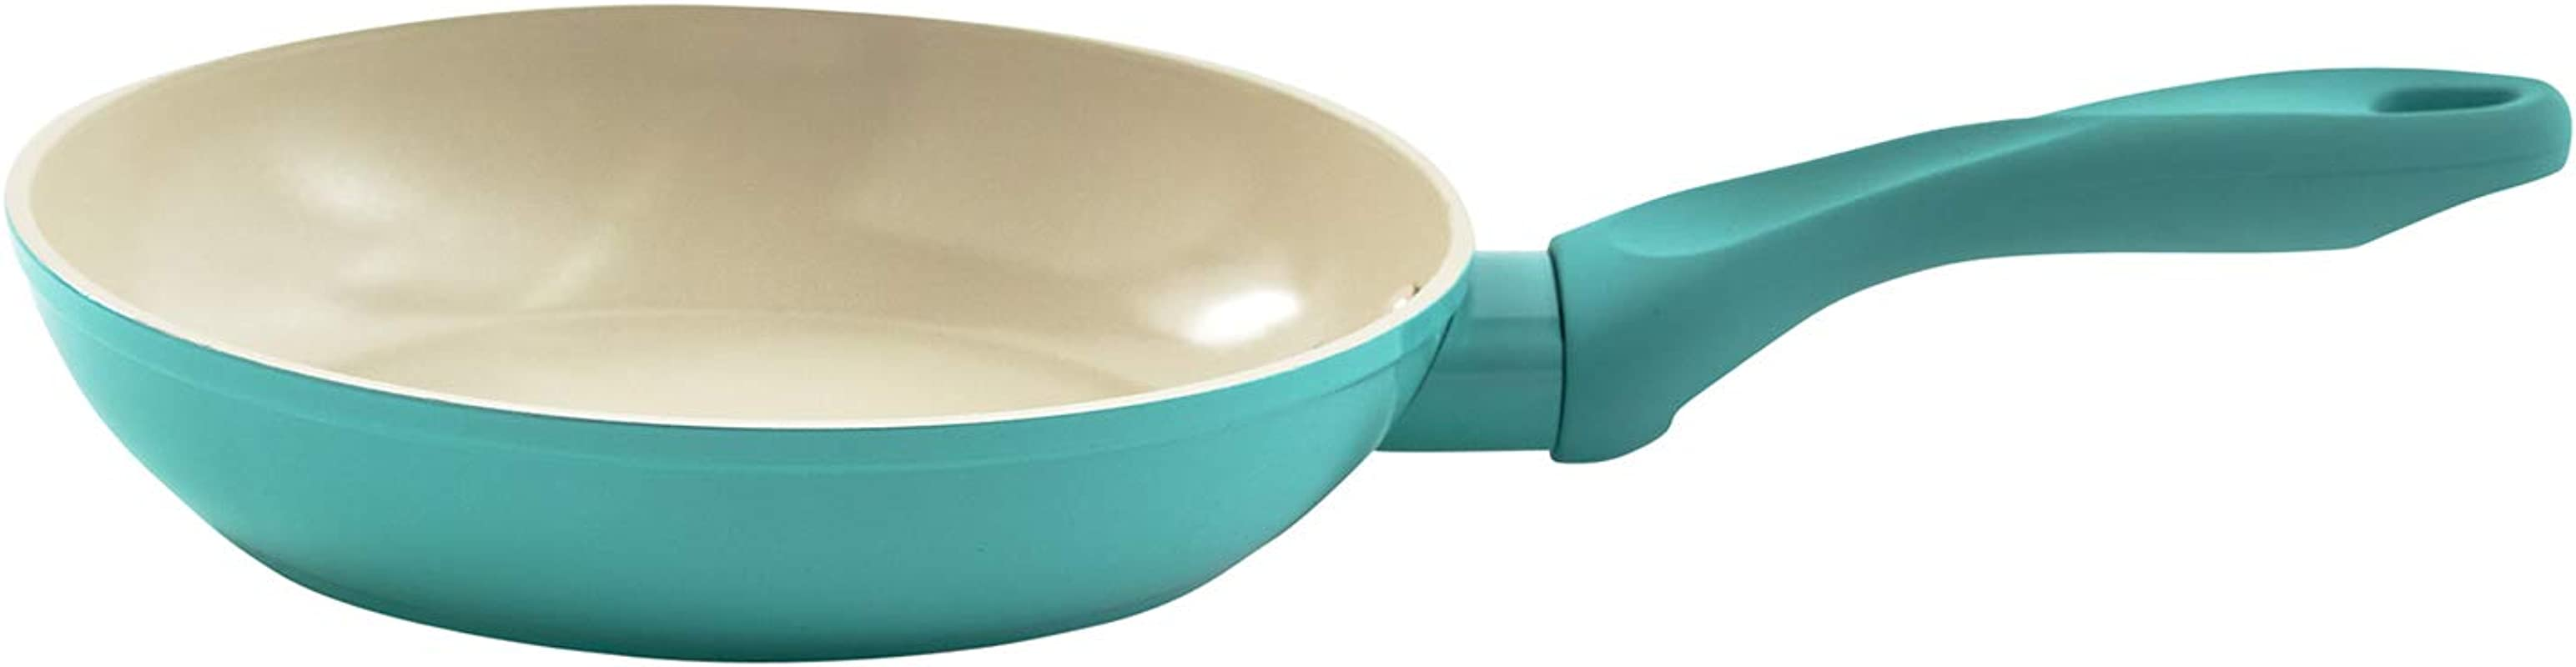 IMUSA USA IMU 30050 Forged Saut Pan With Soft Touch Handle Ceramic Nonstick Interior 8 Inch Teal